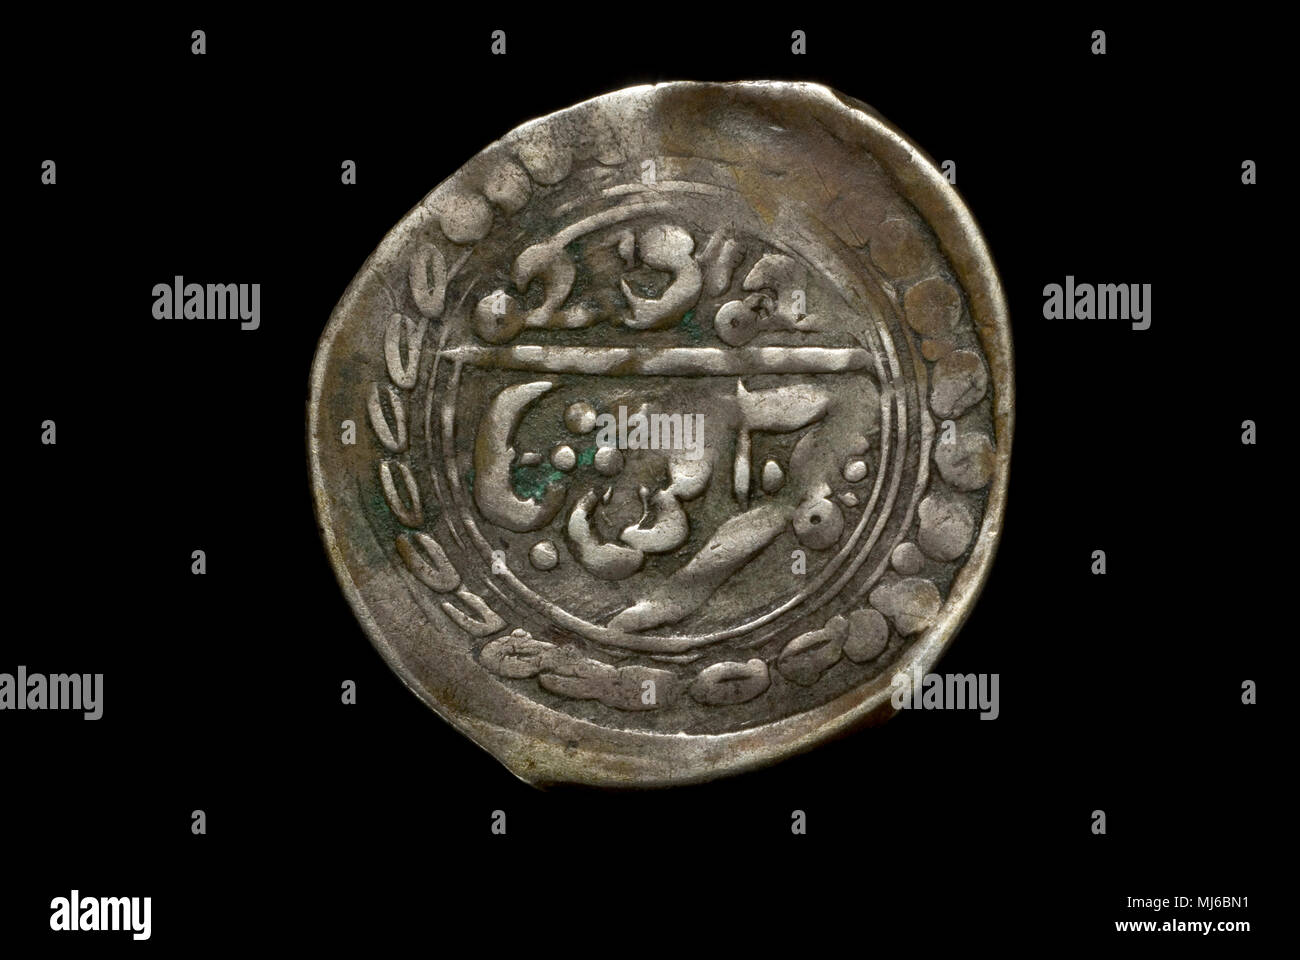 Coin of  Moulay el Husayn (pretender in Morroco). - Stock Image